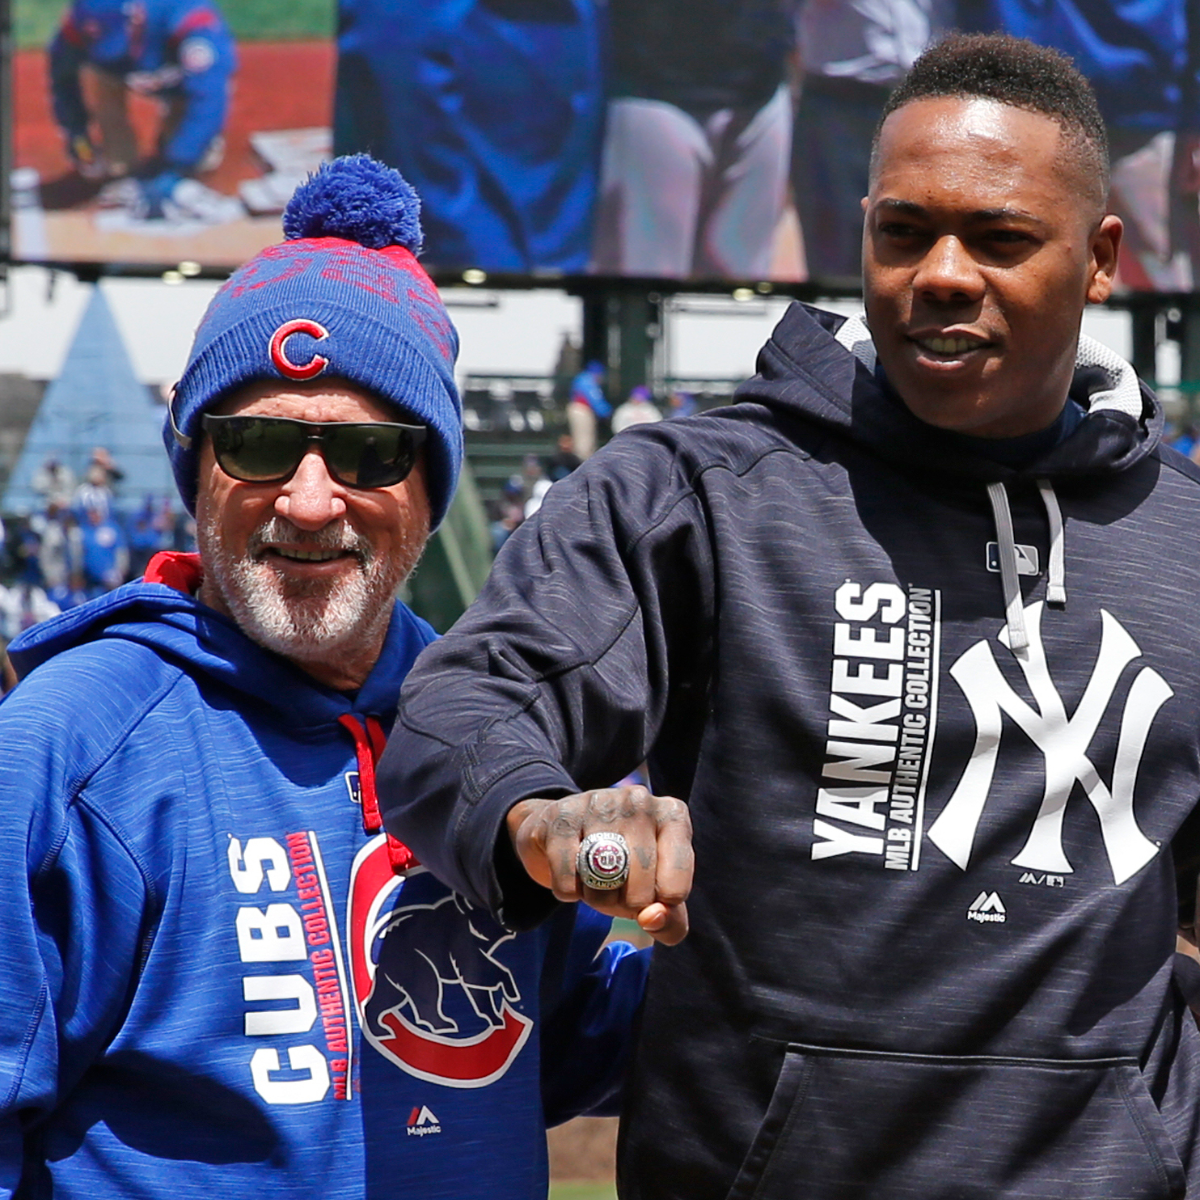 New York Yankees relief pitcher Aroldis Chapman, right, stands with Chicago Cubs manager Joe Maddon as Chapman received his 2016 World Series ring before a game at Wrigley Field on Friday, May 5, 2017. (AP Photo/Nam Y. Huh).